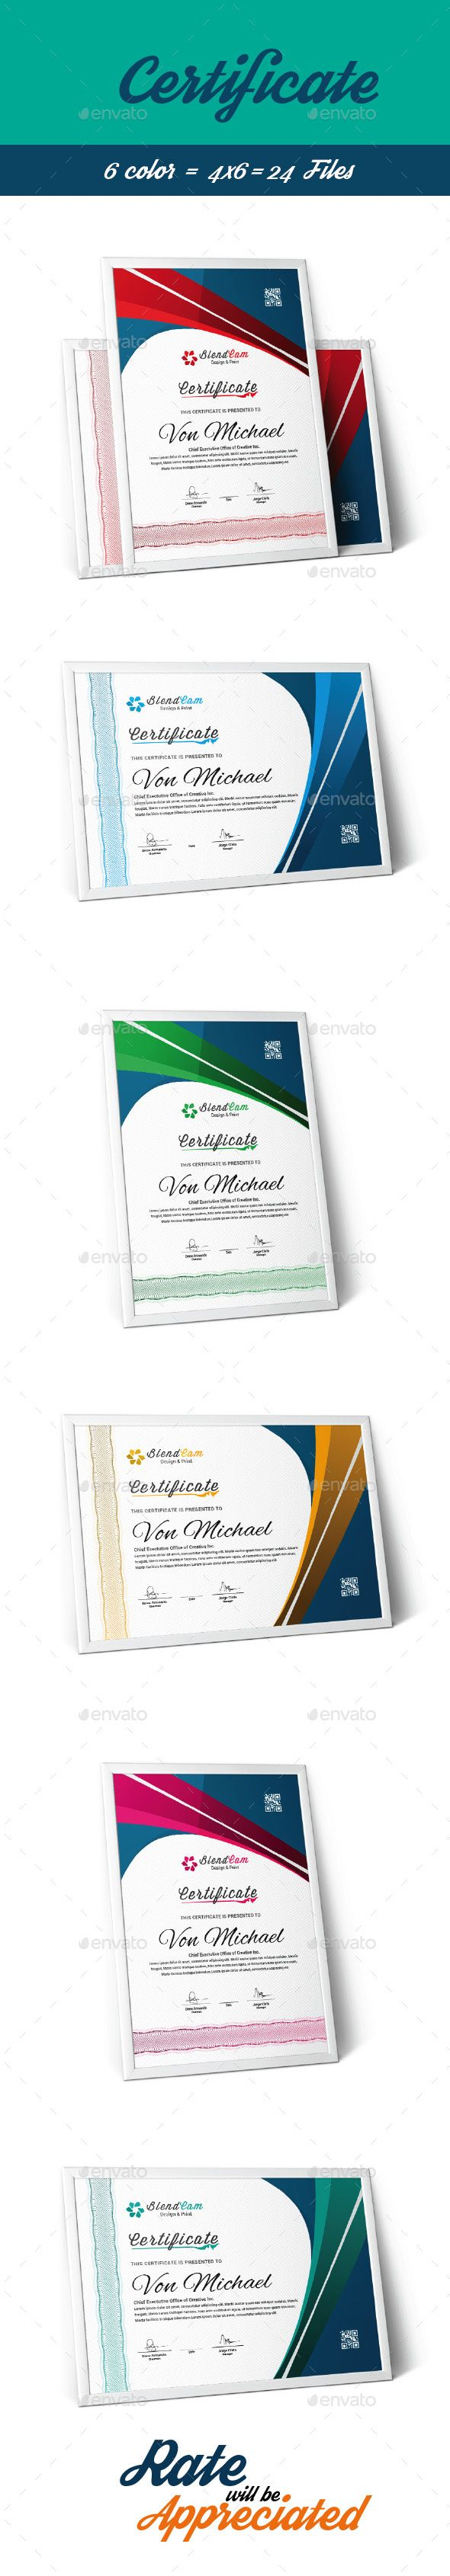 Best 25 certificate design template ideas on pinterest buy certificate by yasinarafat on graphicriver this is a uniquely designed certificate template designed in illustrator with a modern look yelopaper Gallery